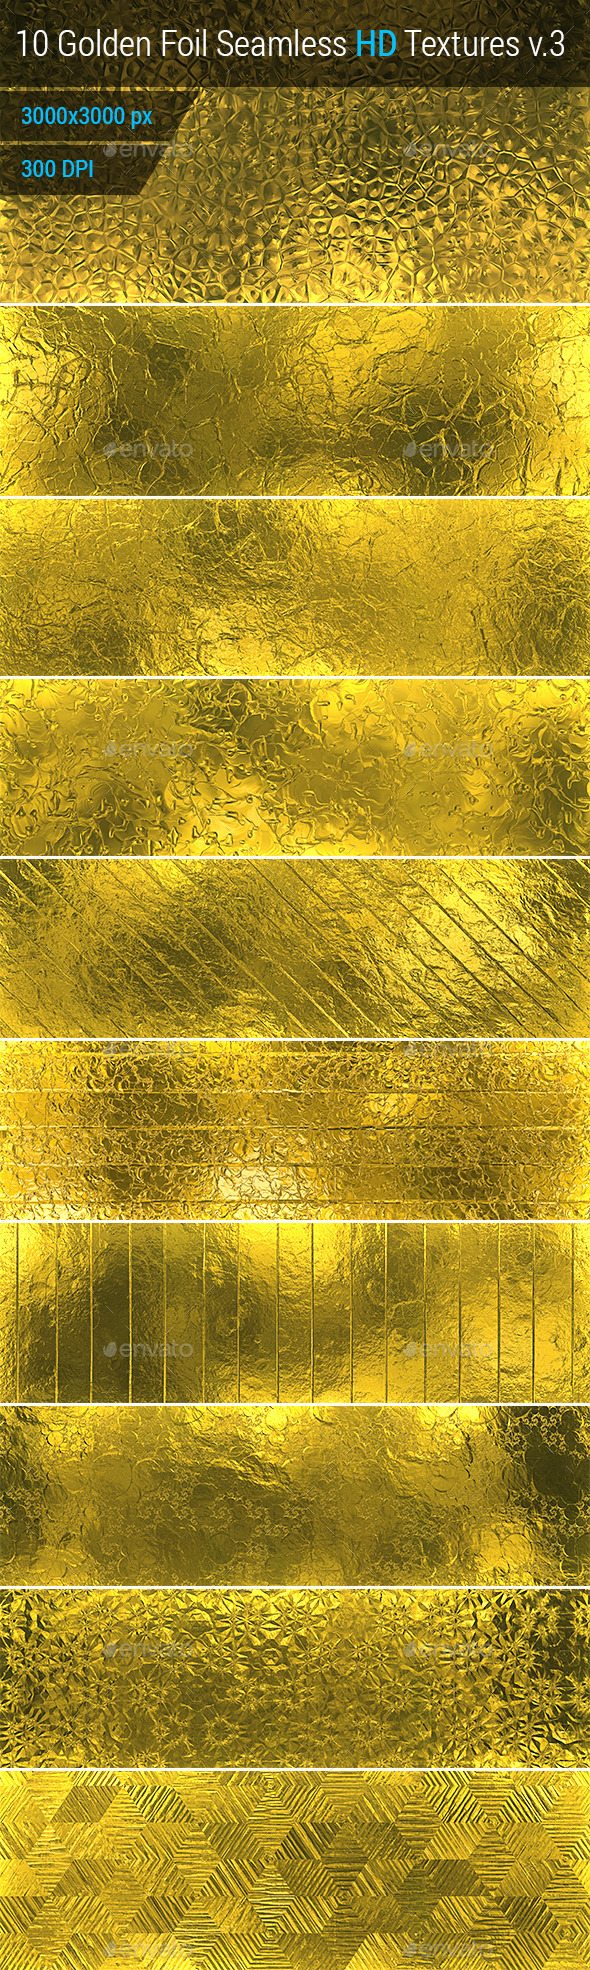 GraphicRiver Golden Foil Seamless HD Textures Set v.3 10233713